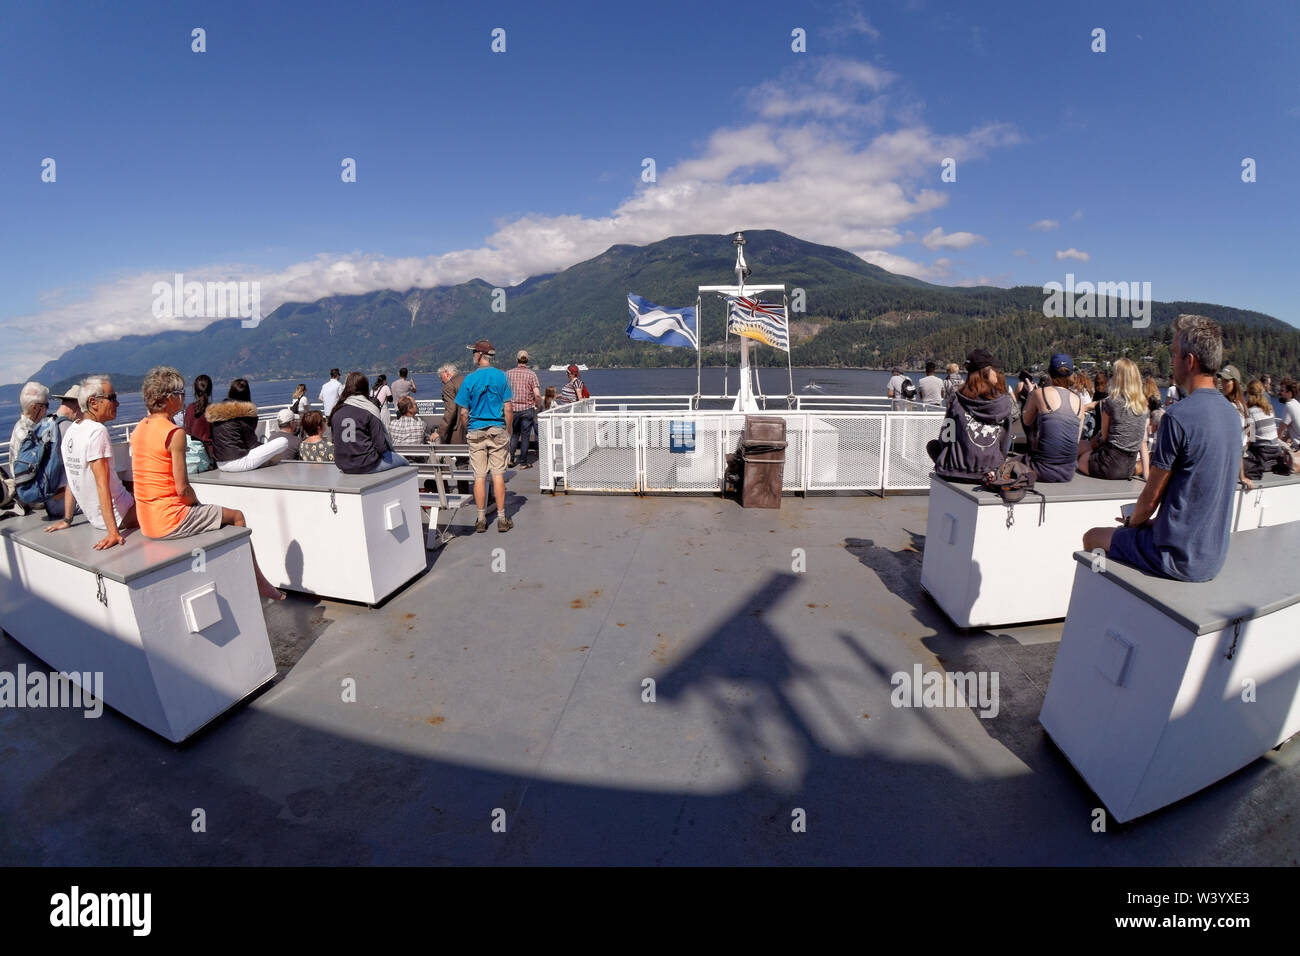 wide-angle-view-of-passengers-enjoying-t